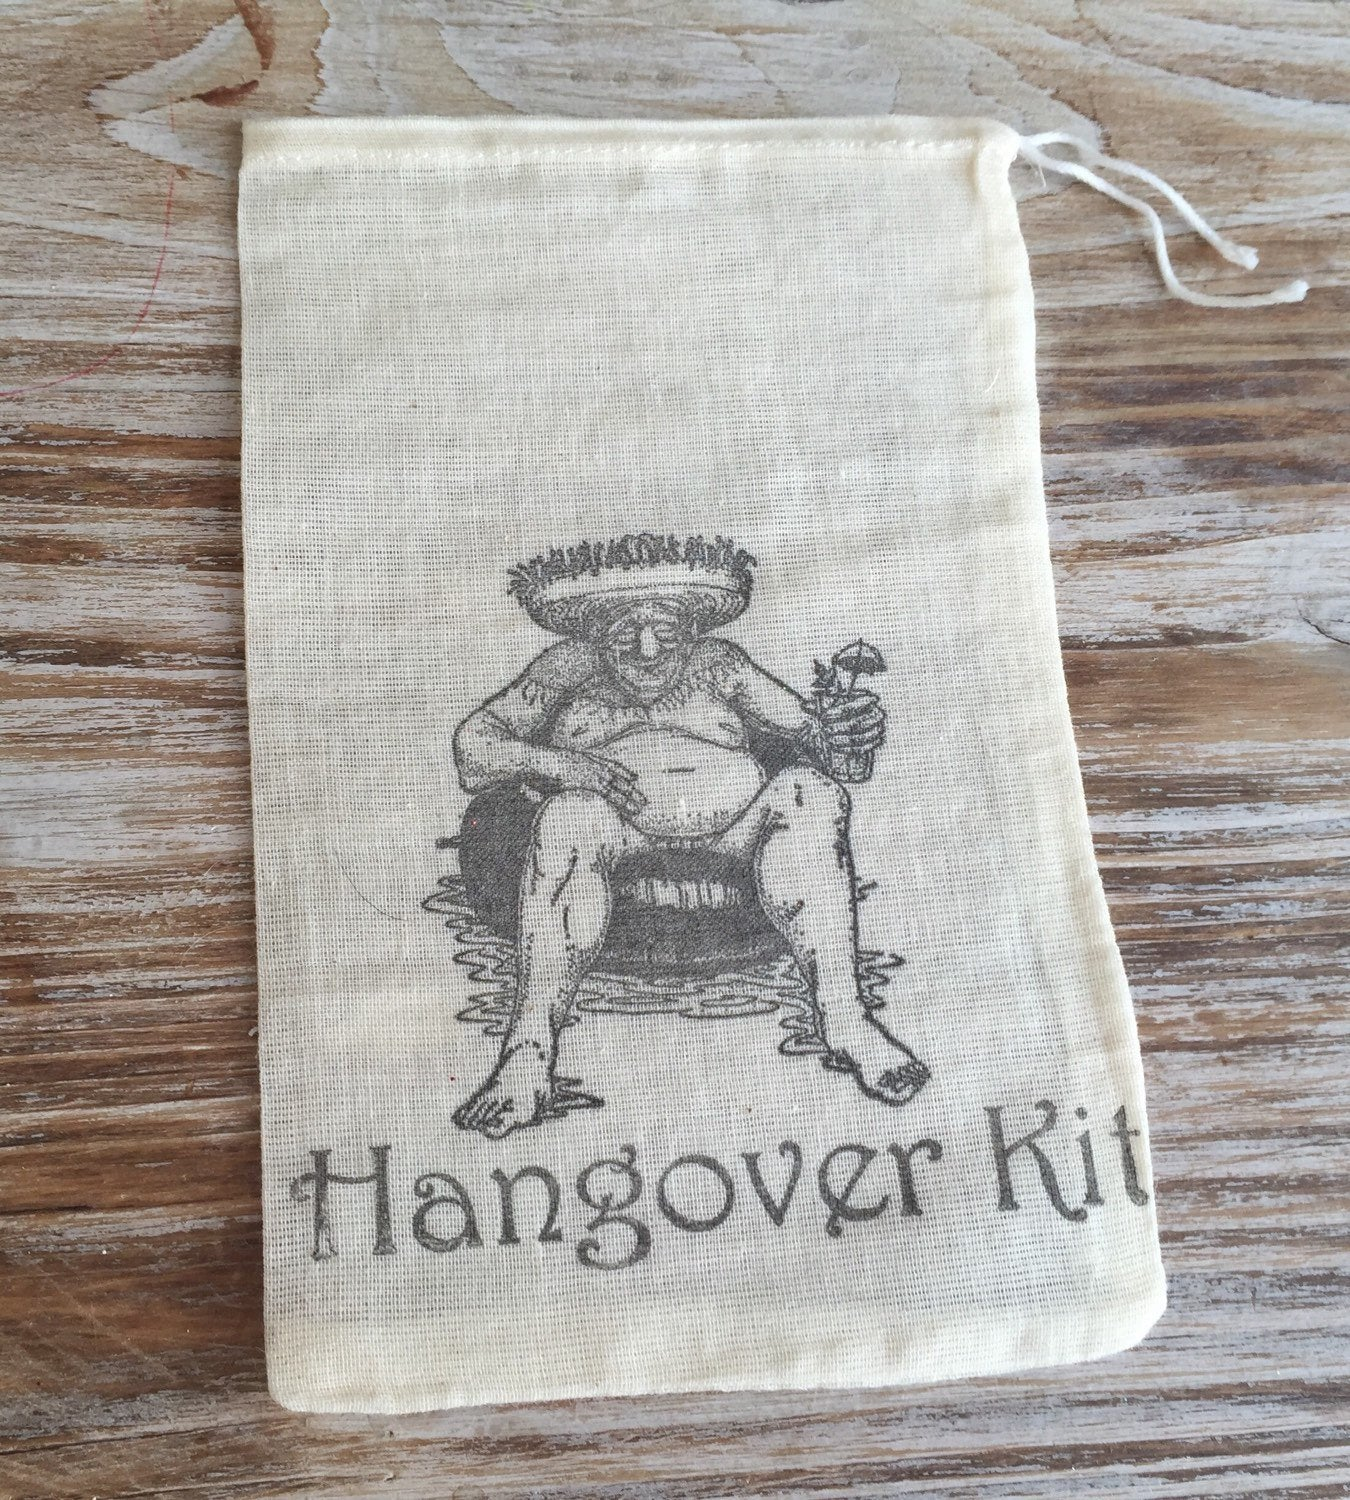 10 mexican hangover kits, beach hangover kits, funny hangover kits, bachelor party hangover kits, mexican wedding